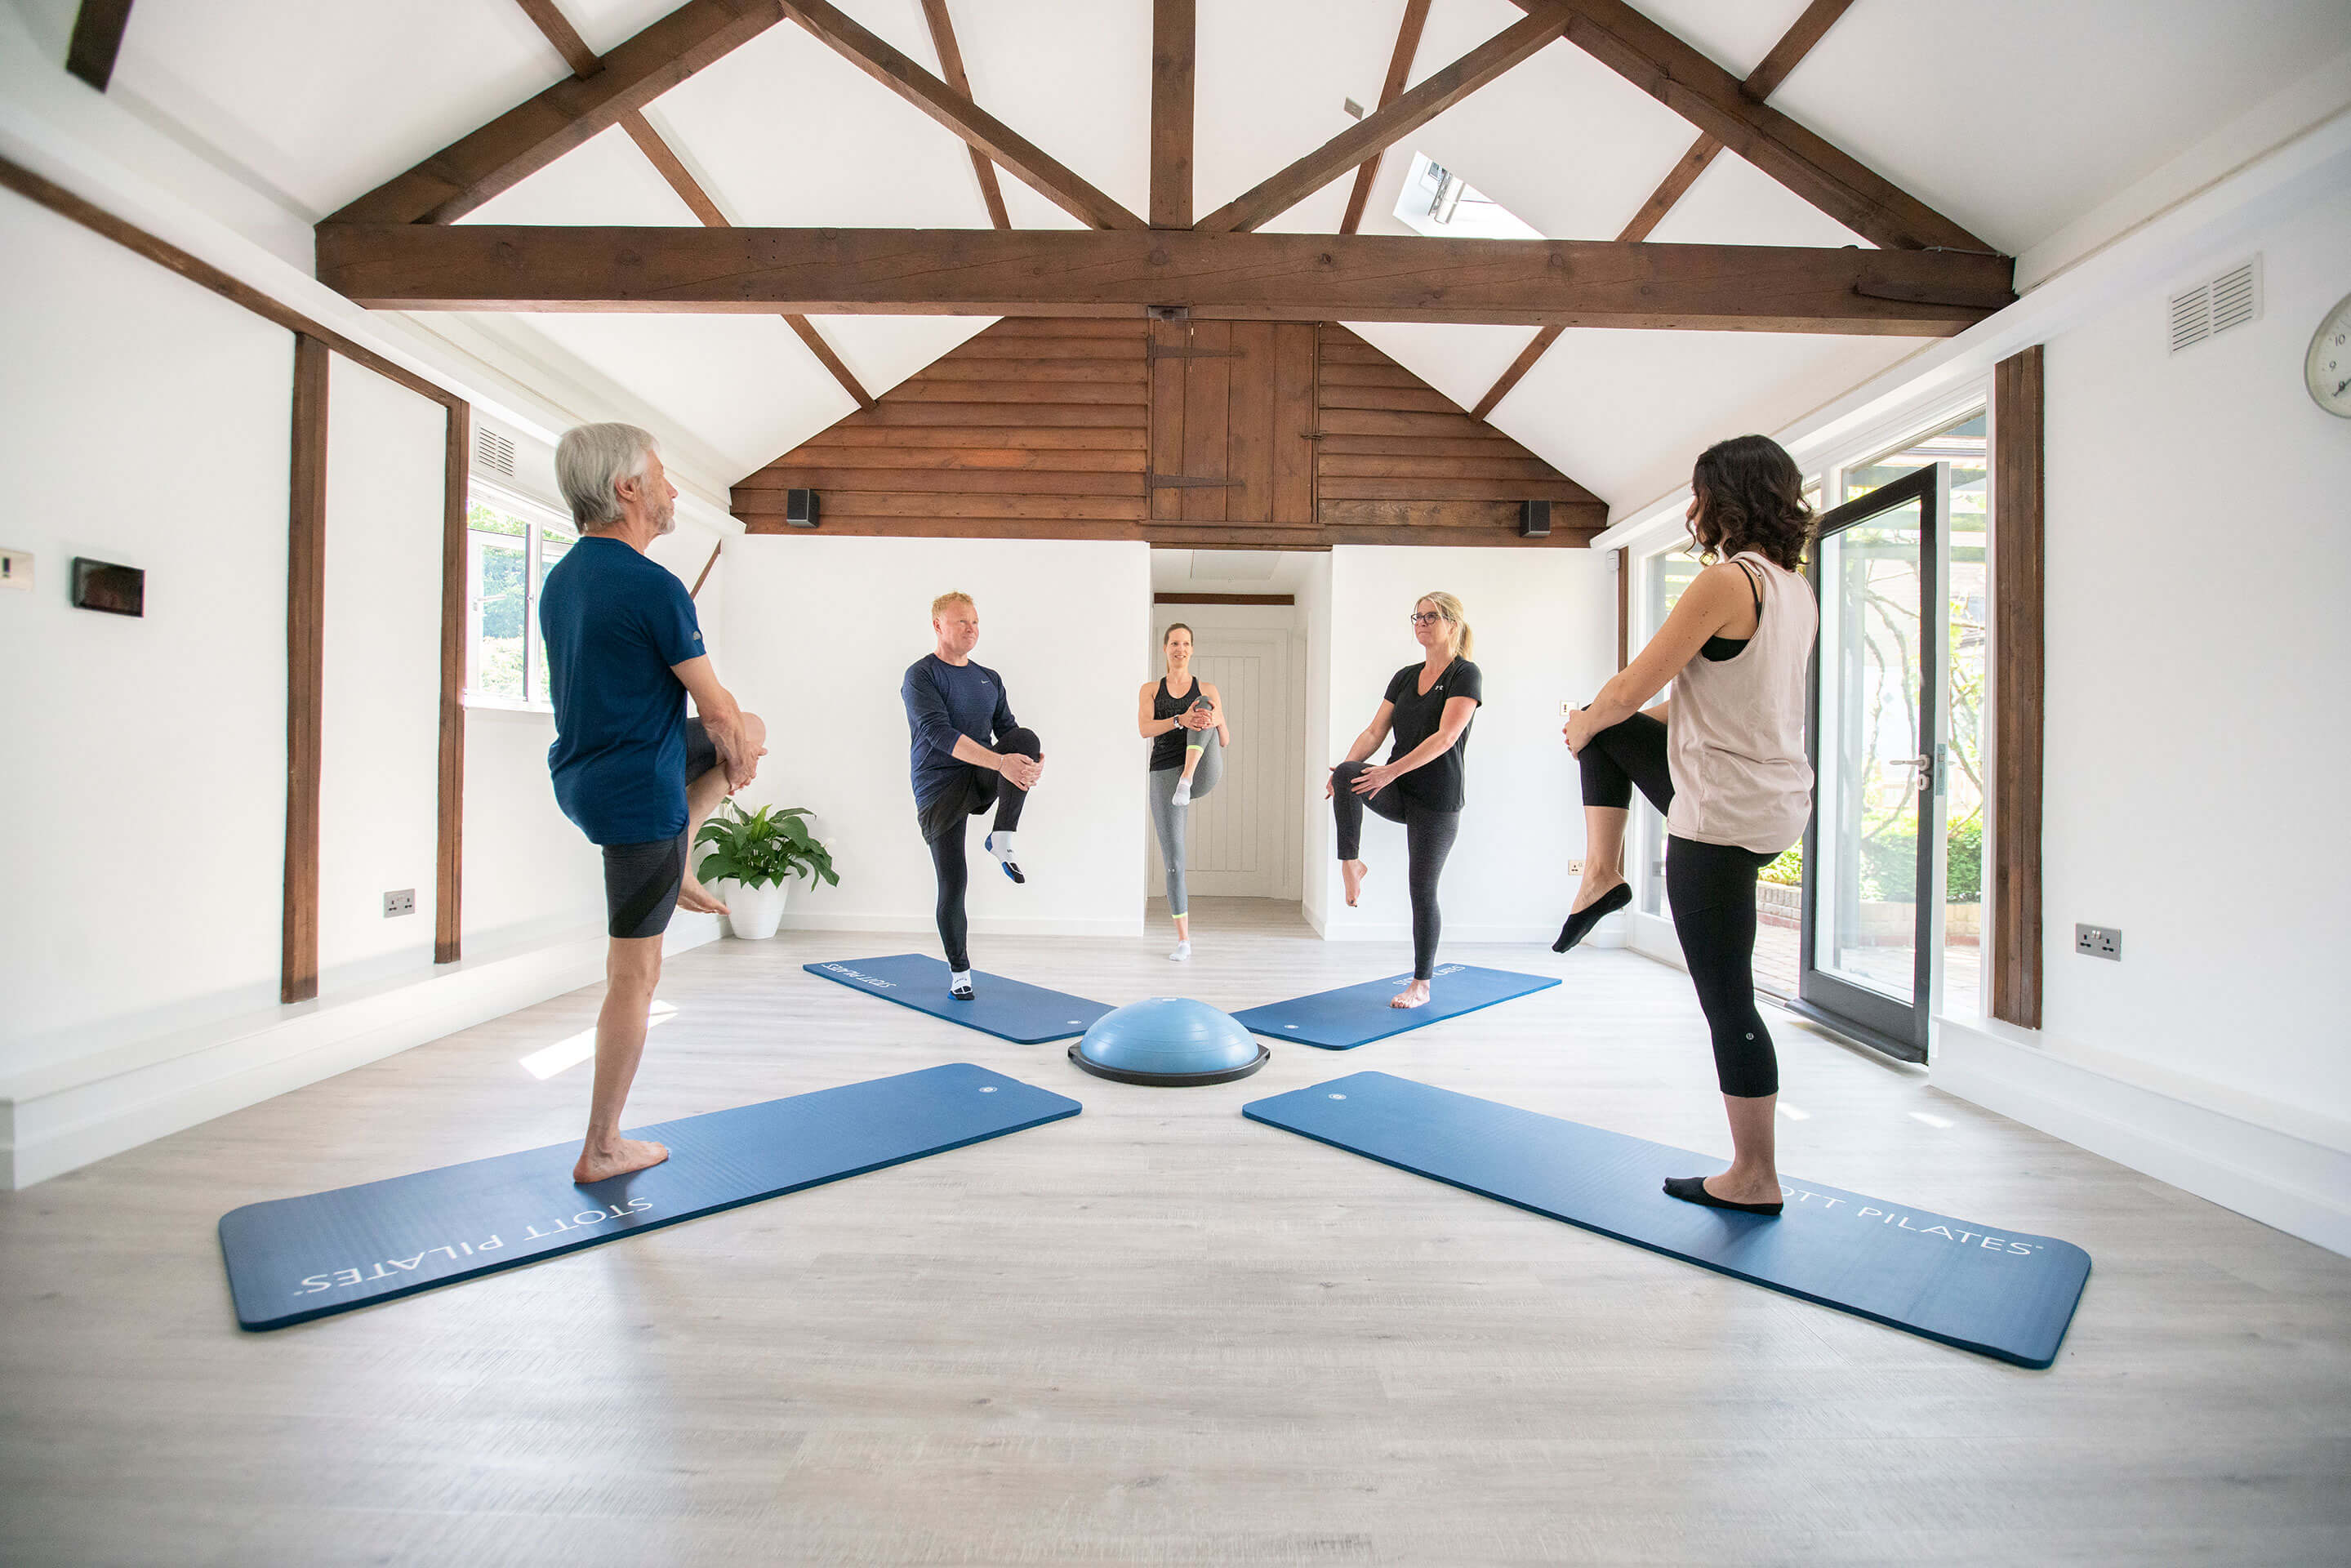 As well as Studio Pilates including equipment such as a reformer, Cadillac and Chair we also offer Mat Pilates